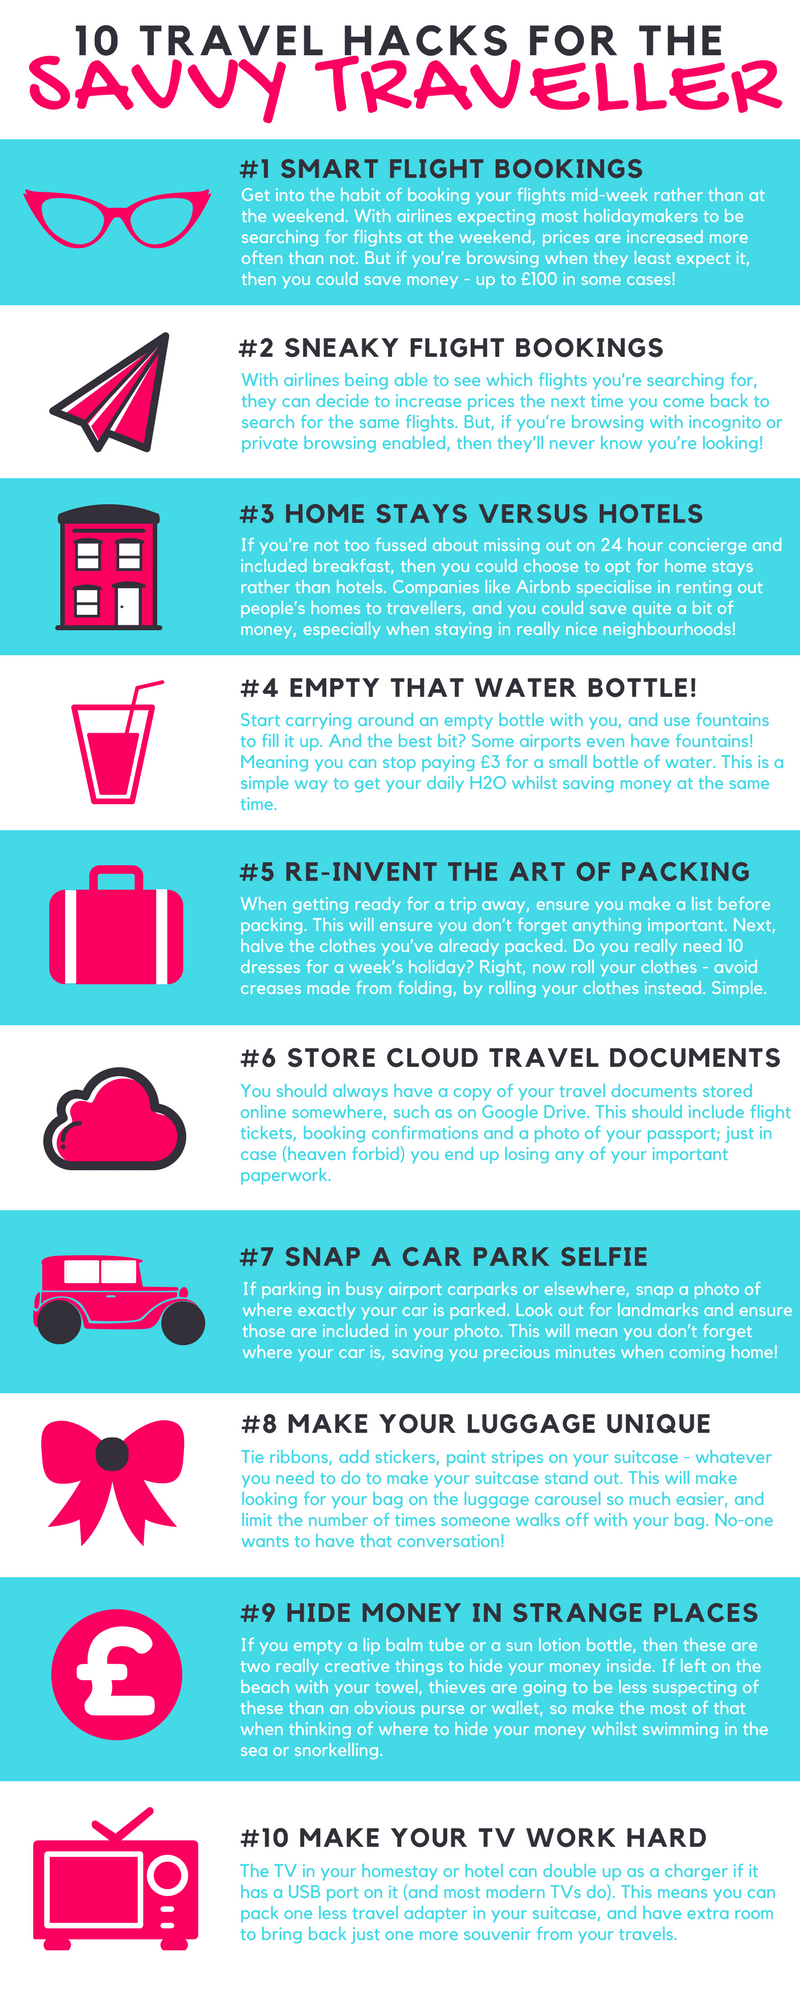 10 Travel Hacks for the Savvy Traveller